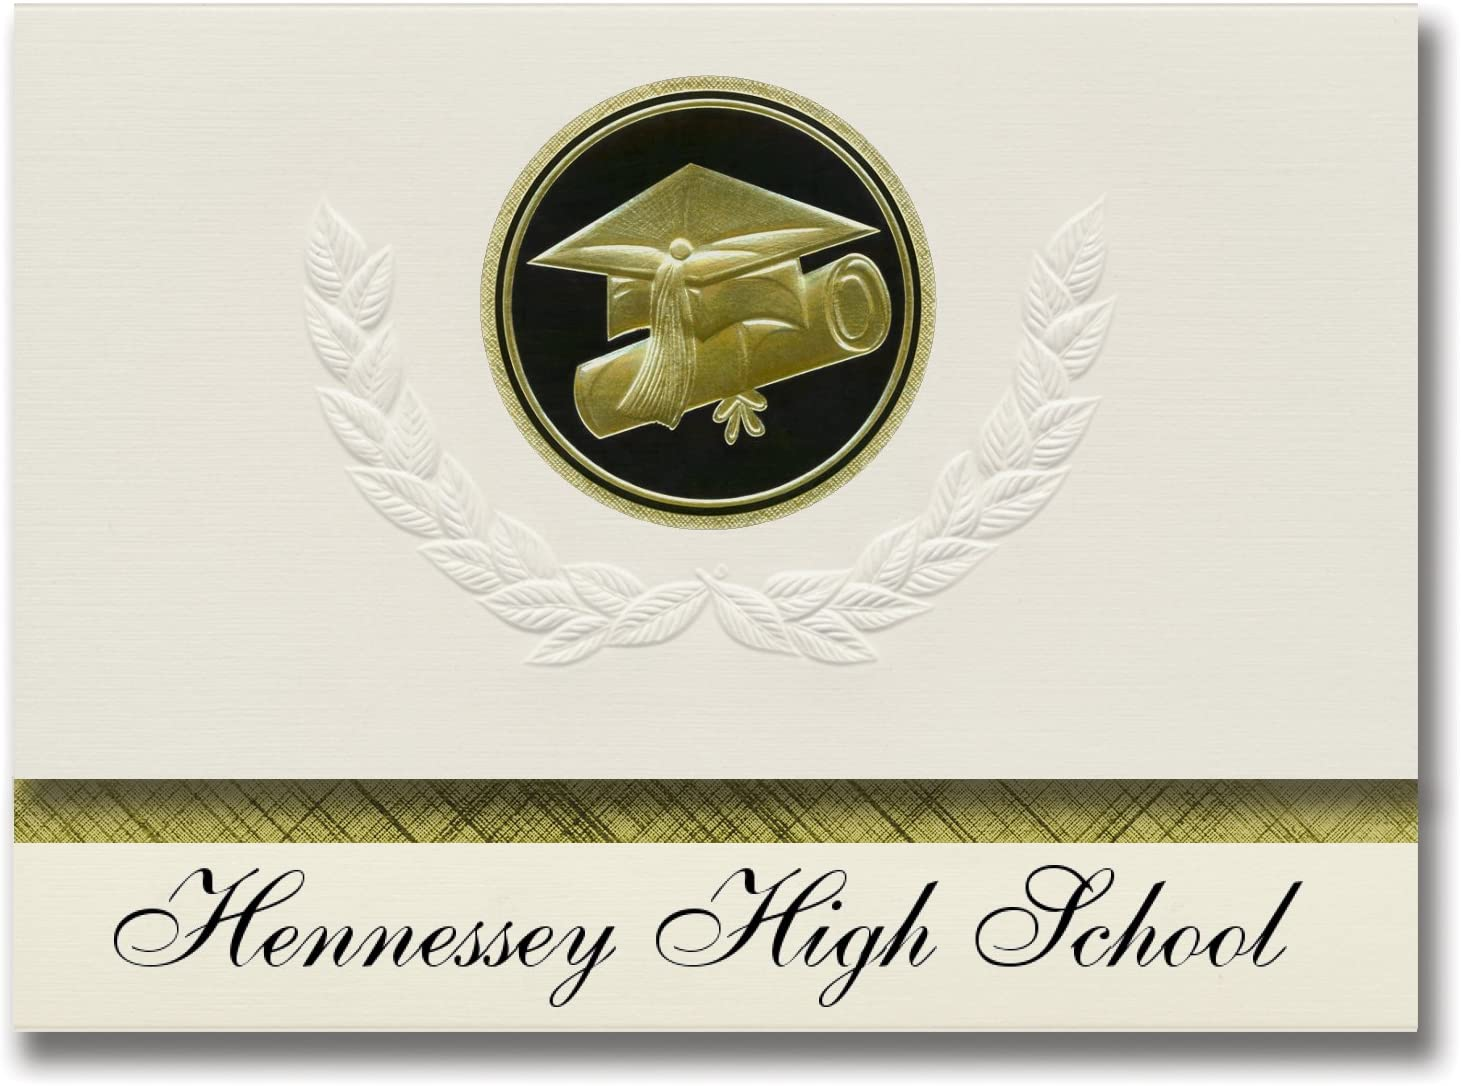 Signature Announcements Hennessey High School (Hennessey, OK) Graduation Announcements, Presidential style, Elite package of 25 Cap & Diploma Seal Black & Gold